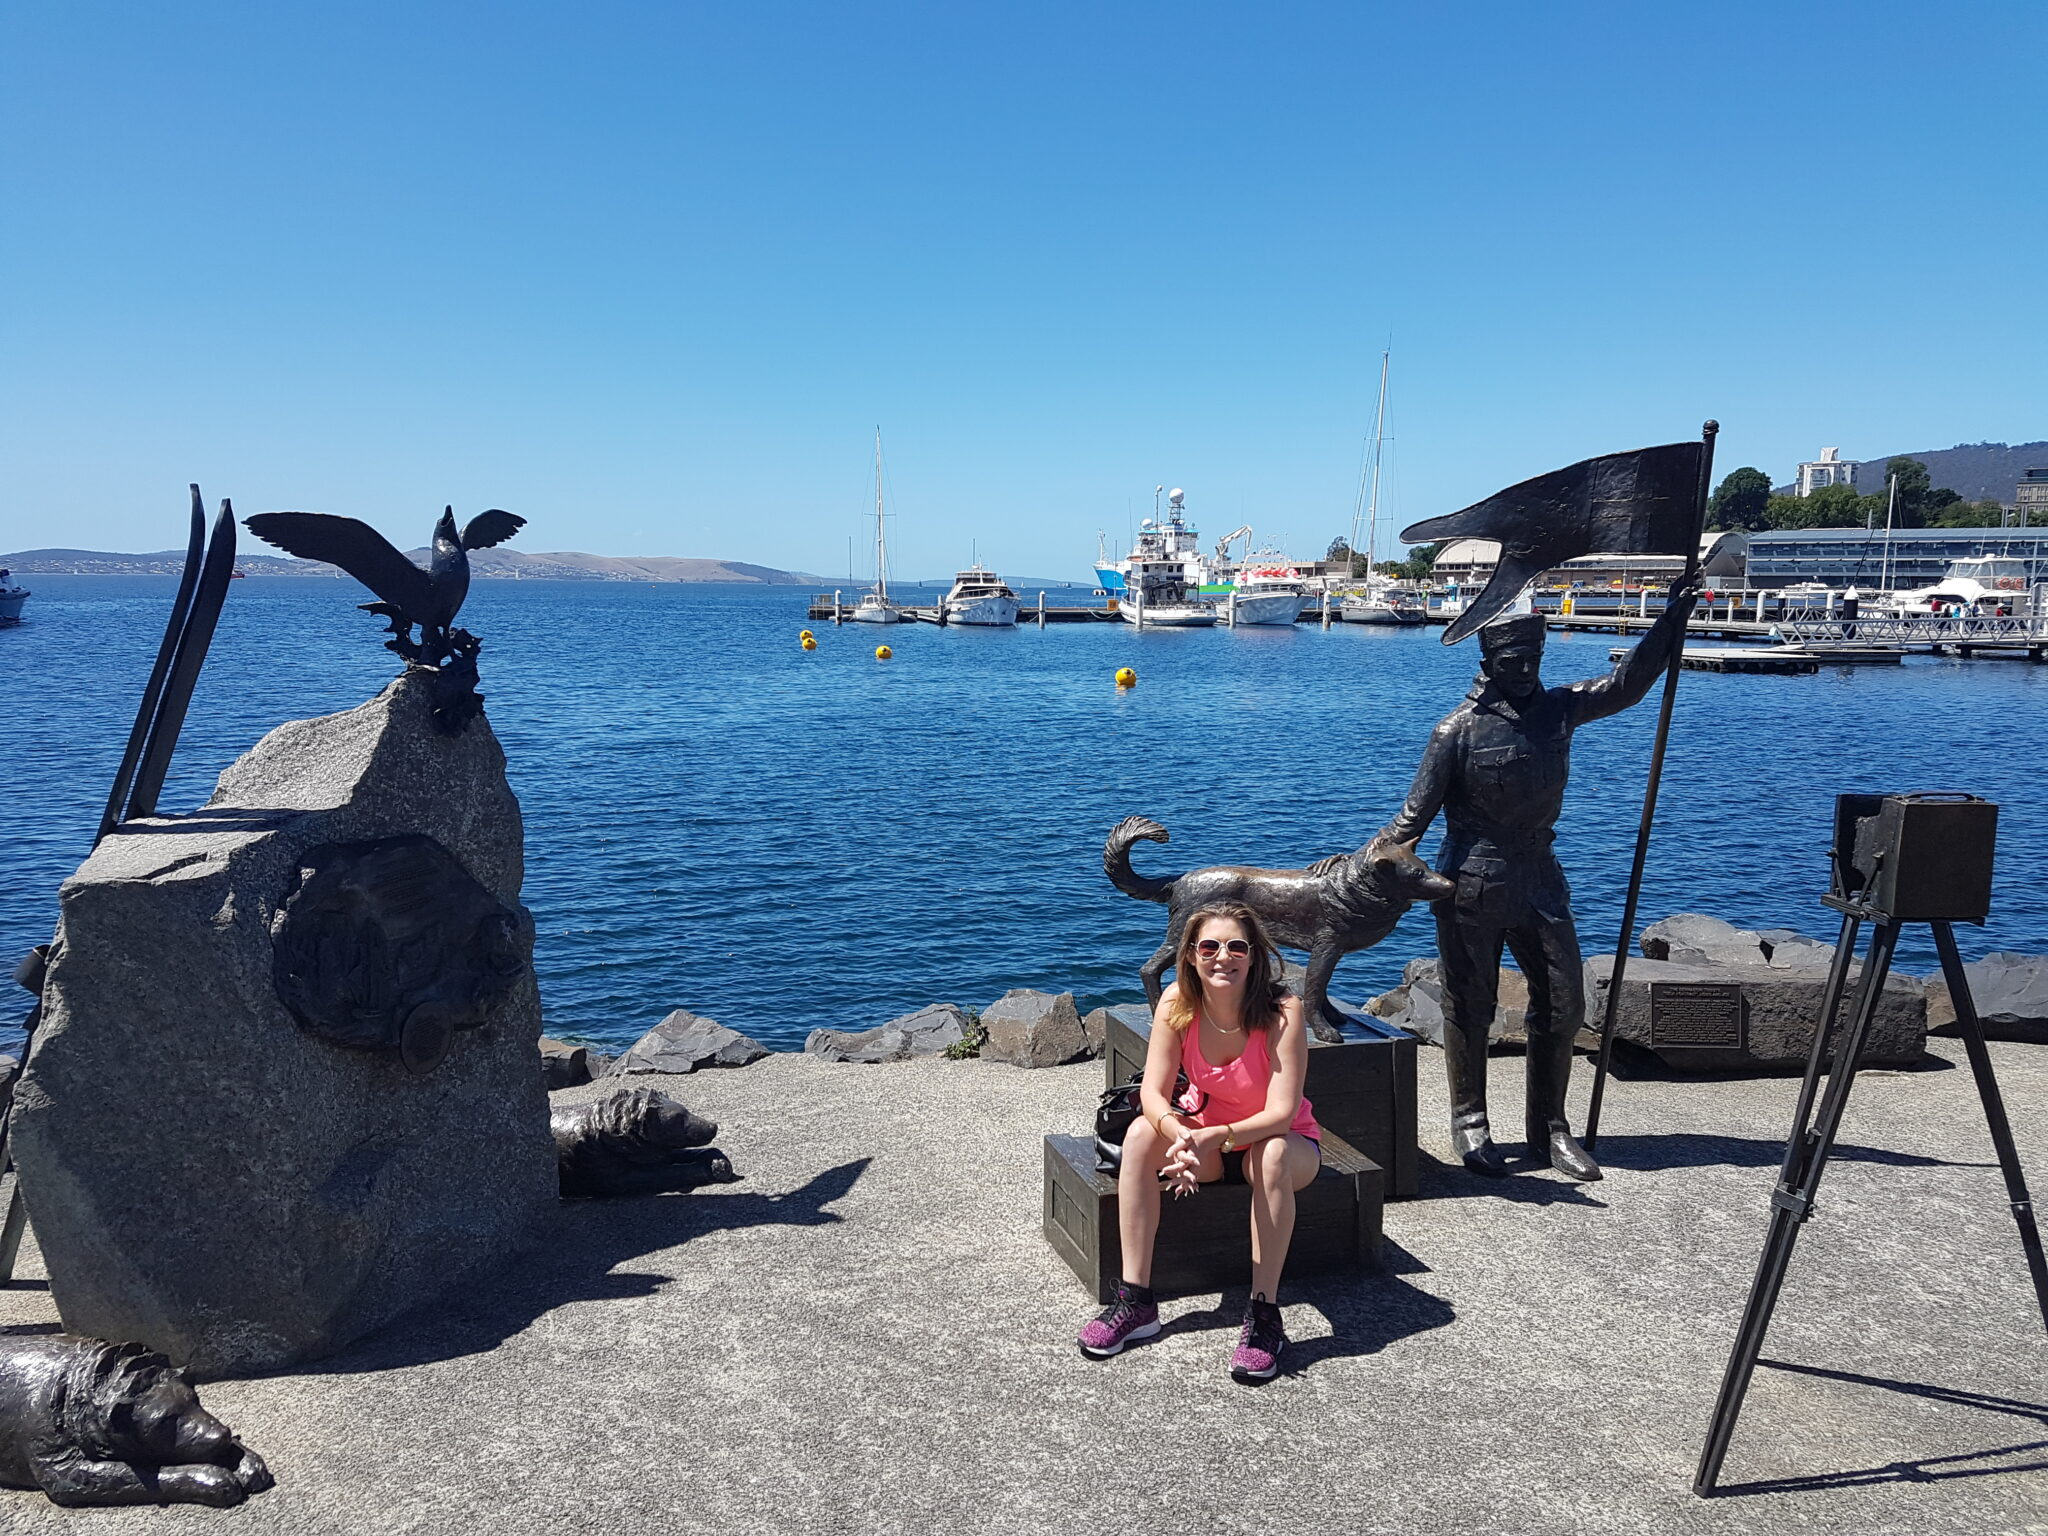 Danae on the Hobart Waterfront